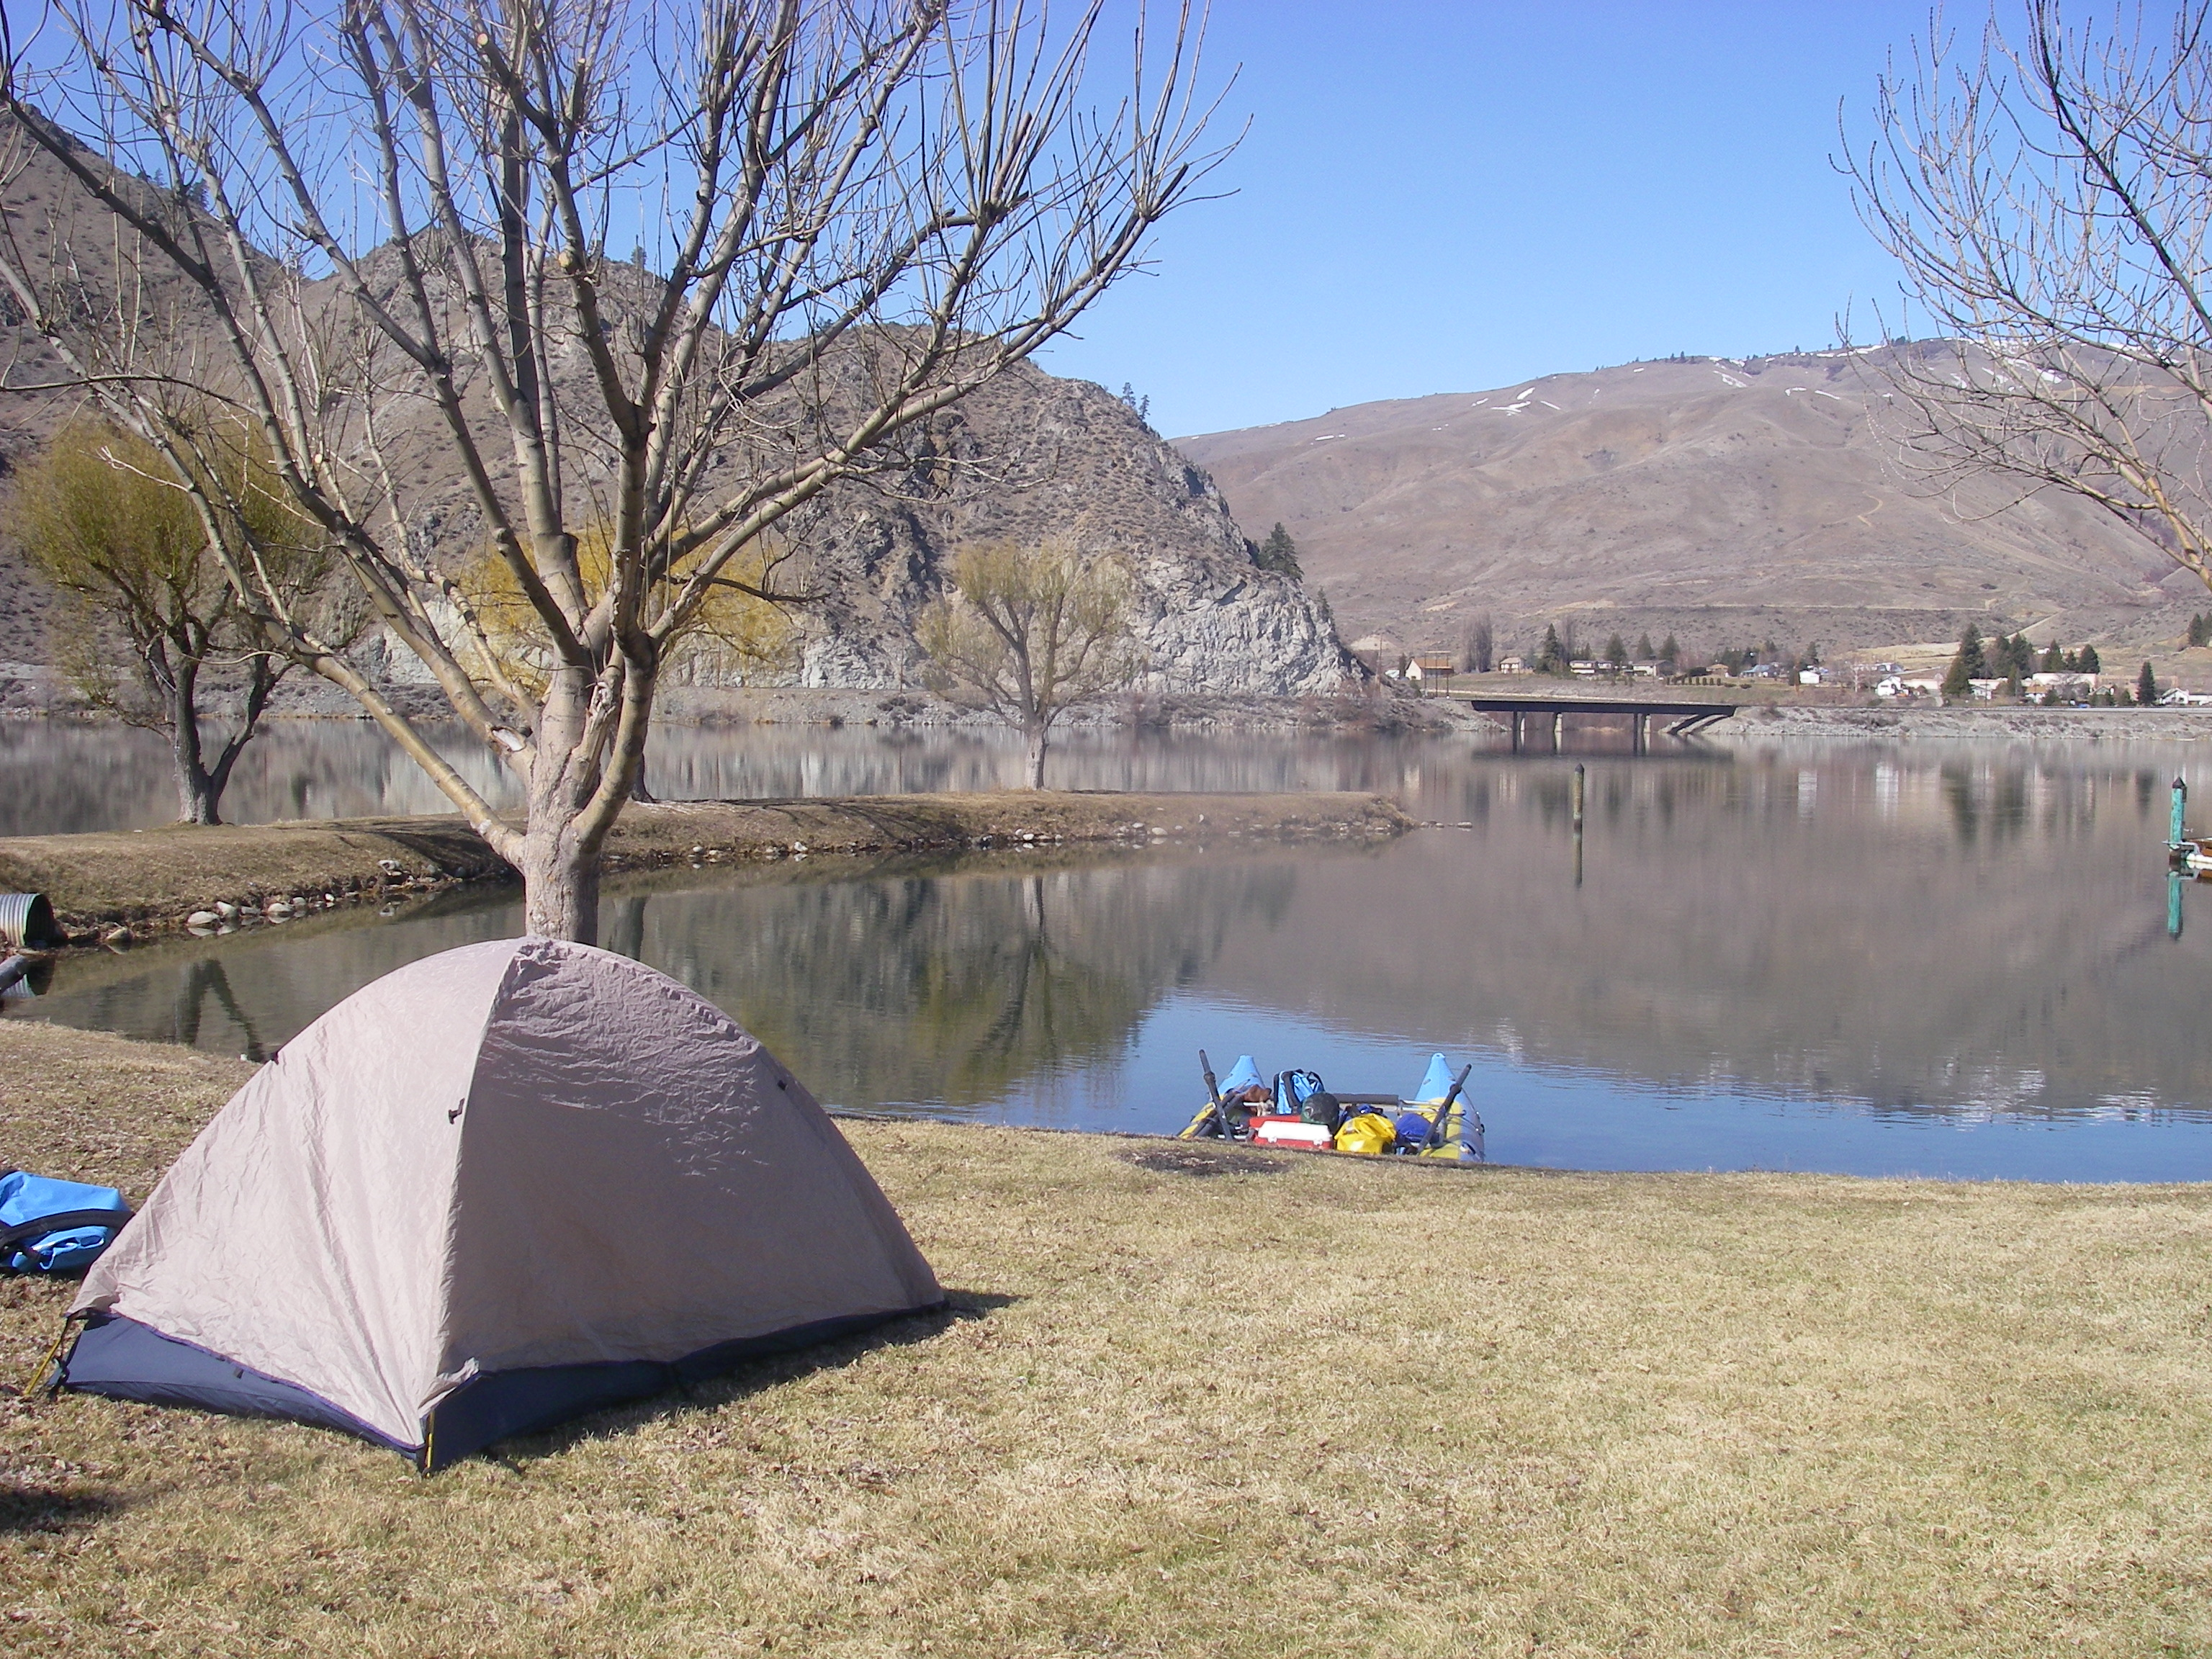 Campground 10 miles upriver from Rocky Reach Dam